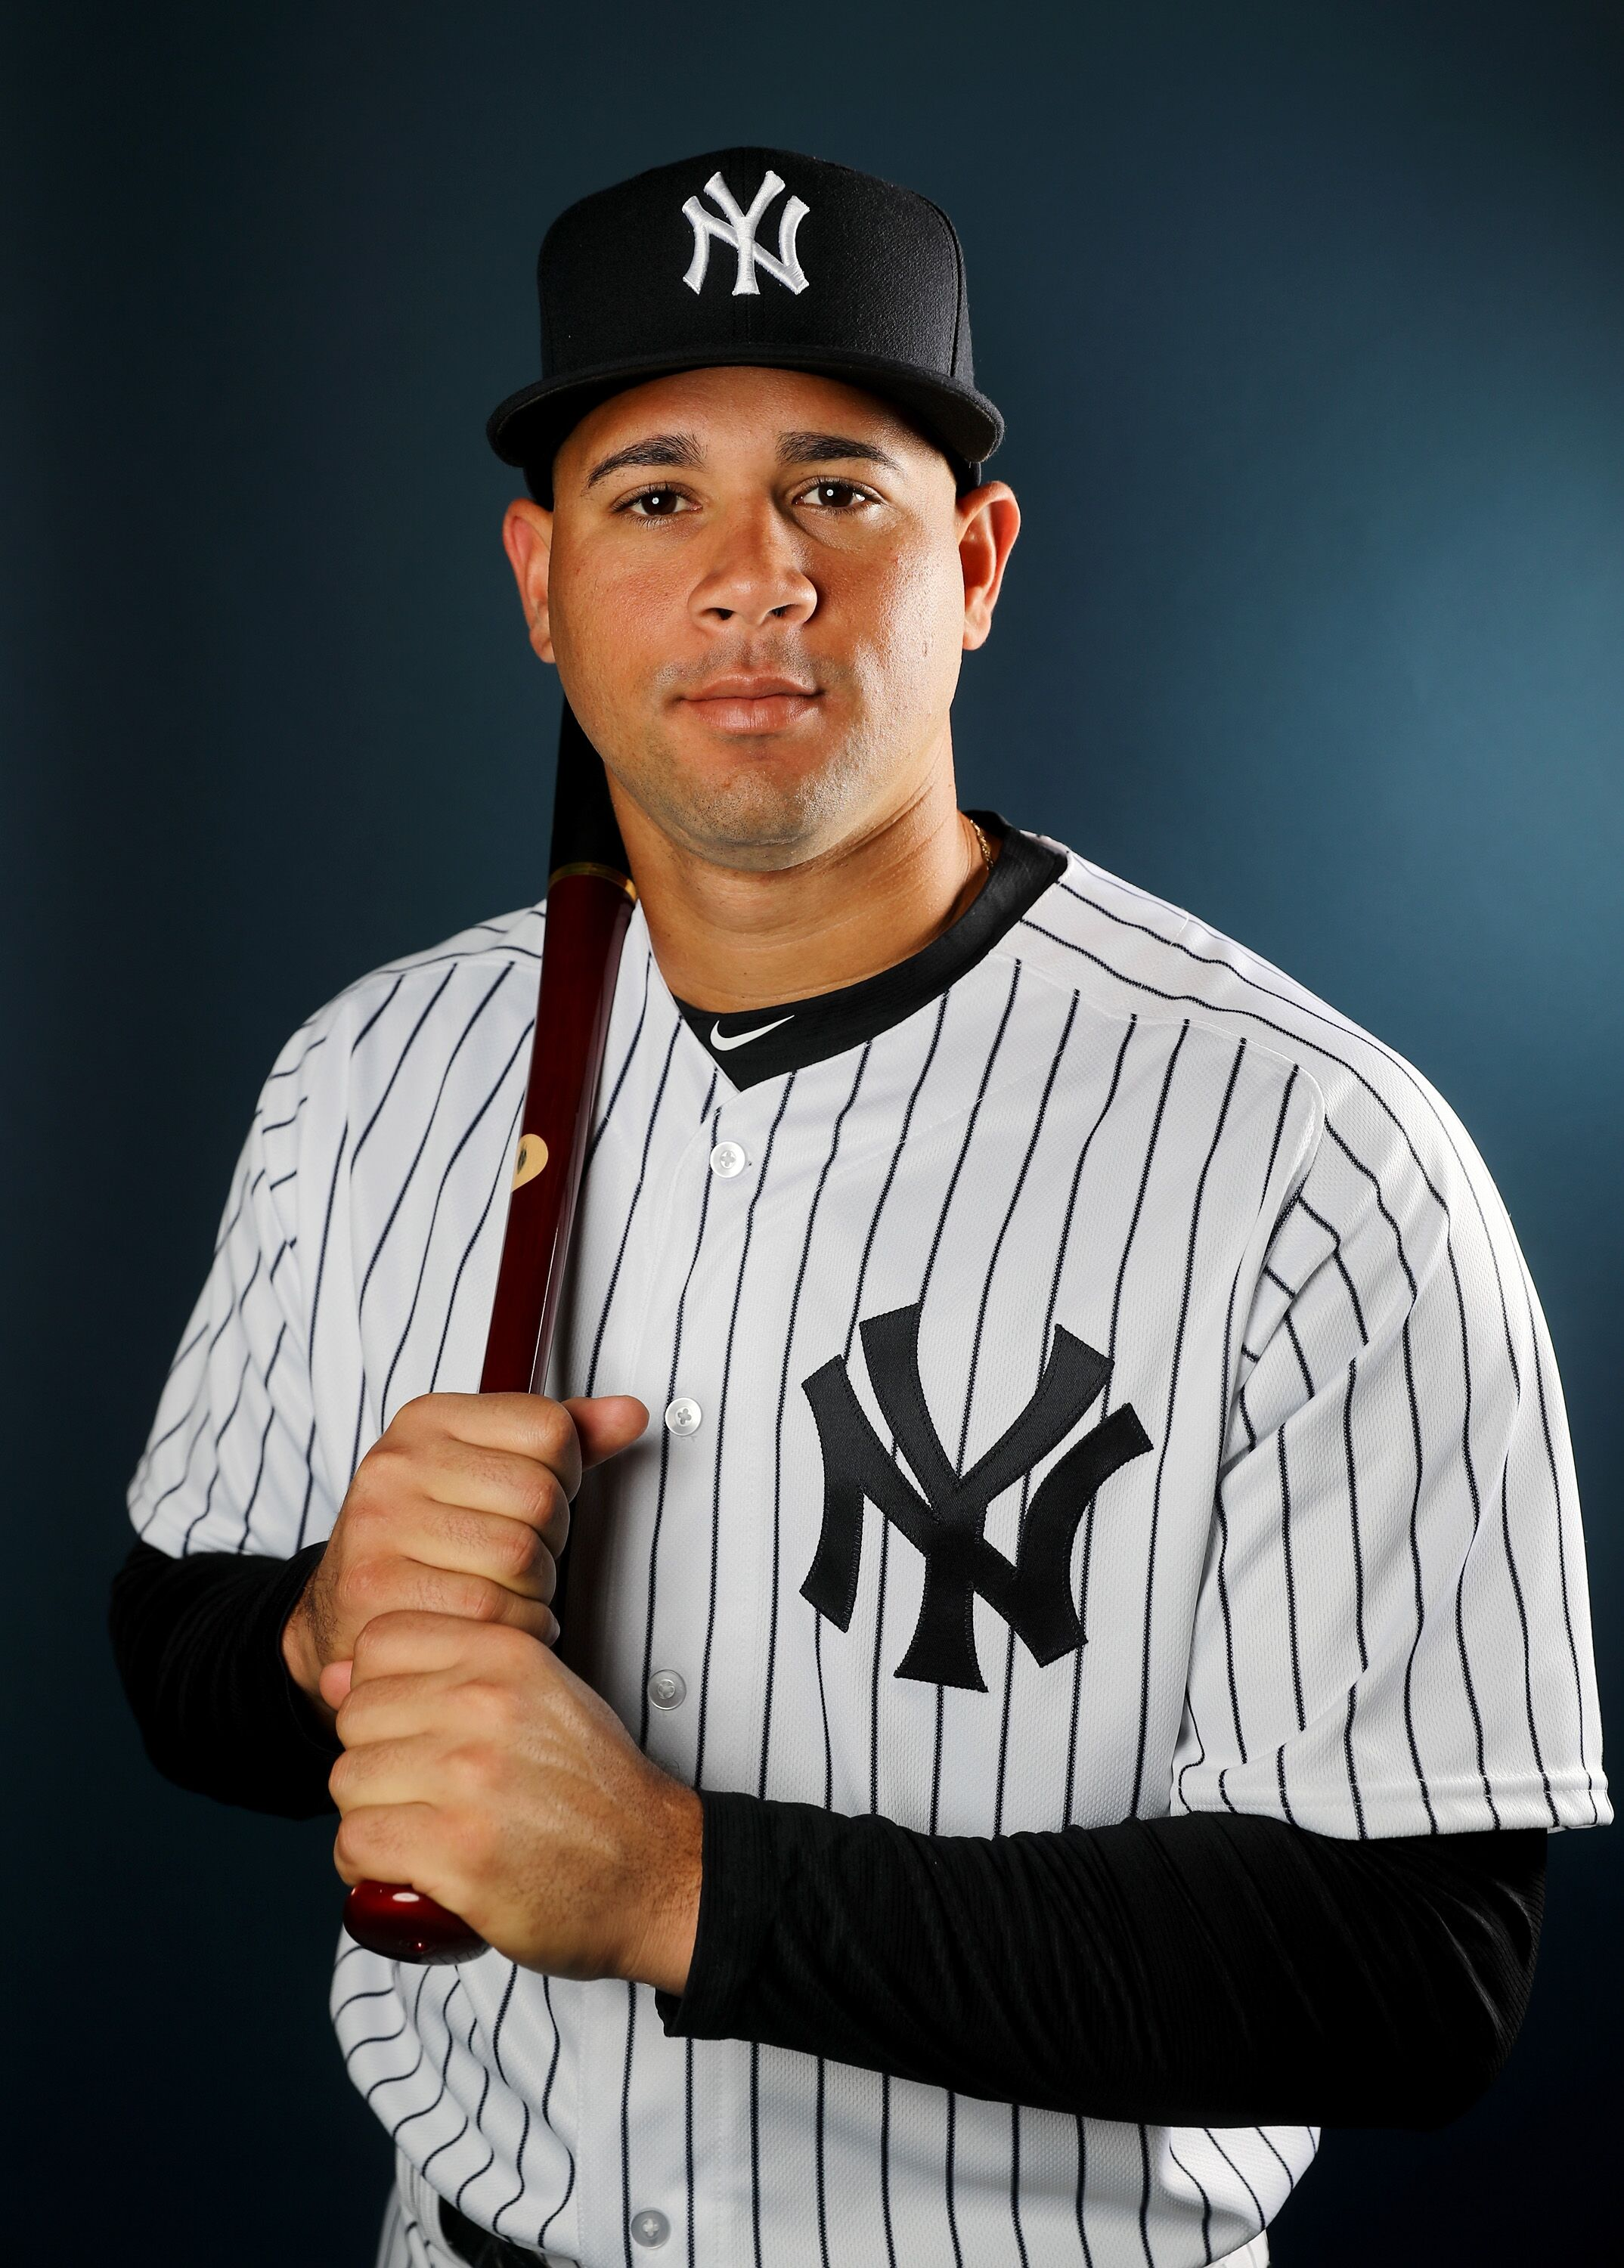 922308592-new-york-yankees-photo-day.jpg